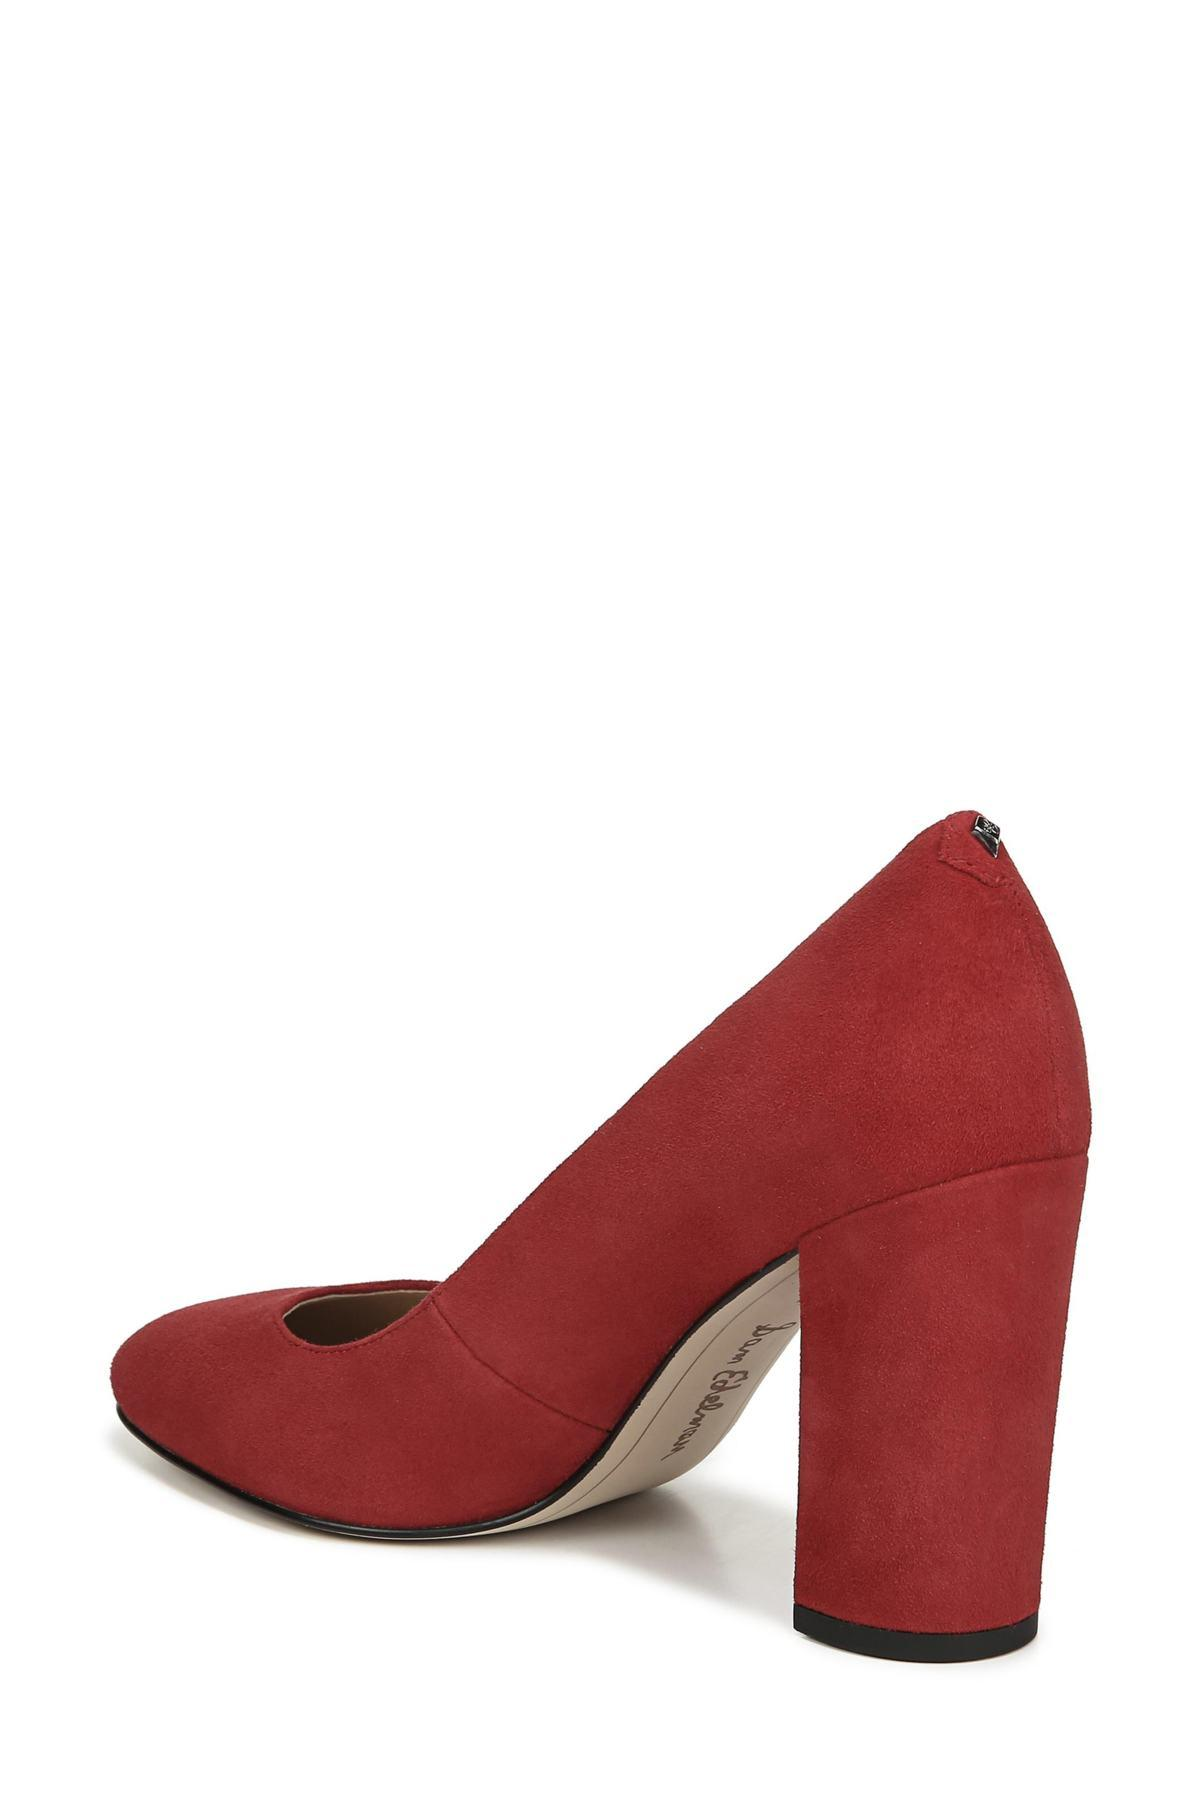 985159e1080d Sam Edelman - Red Stillson Pump - Lyst. View fullscreen